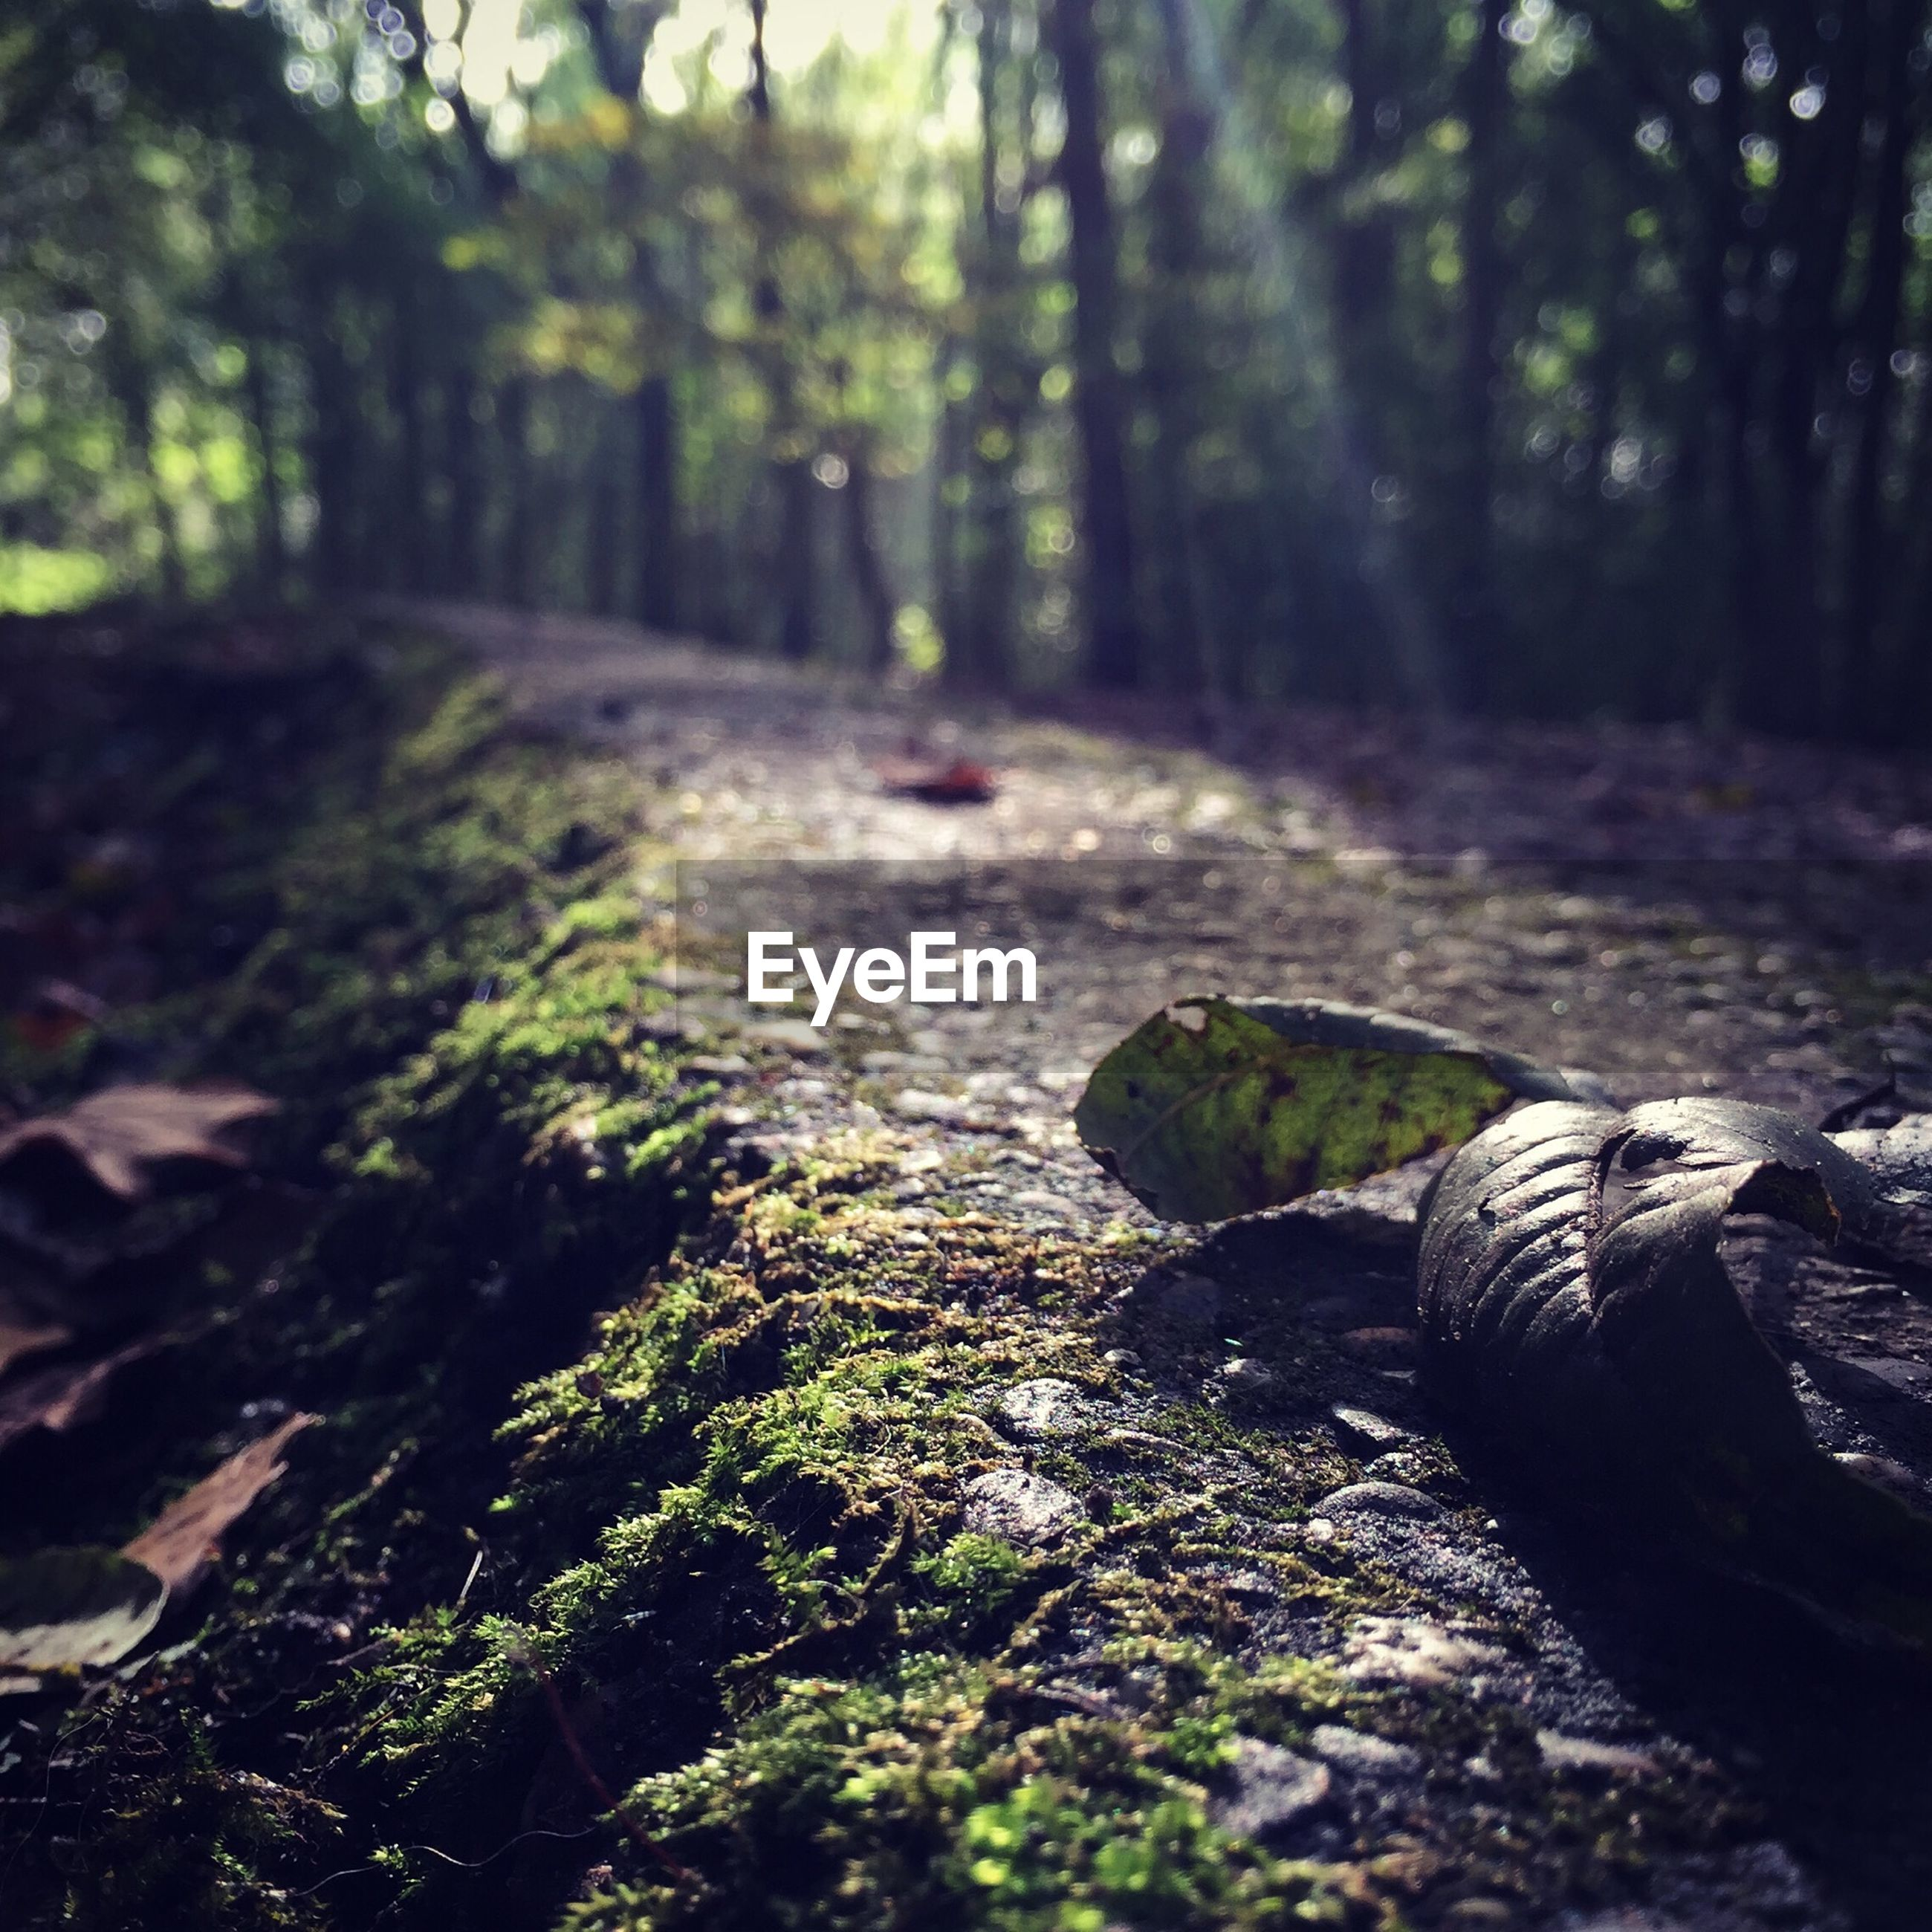 tree, forest, tree trunk, tranquility, nature, wood - material, the way forward, tranquil scene, growth, leaf, outdoors, day, moss, selective focus, beauty in nature, woodland, log, no people, surface level, non-urban scene